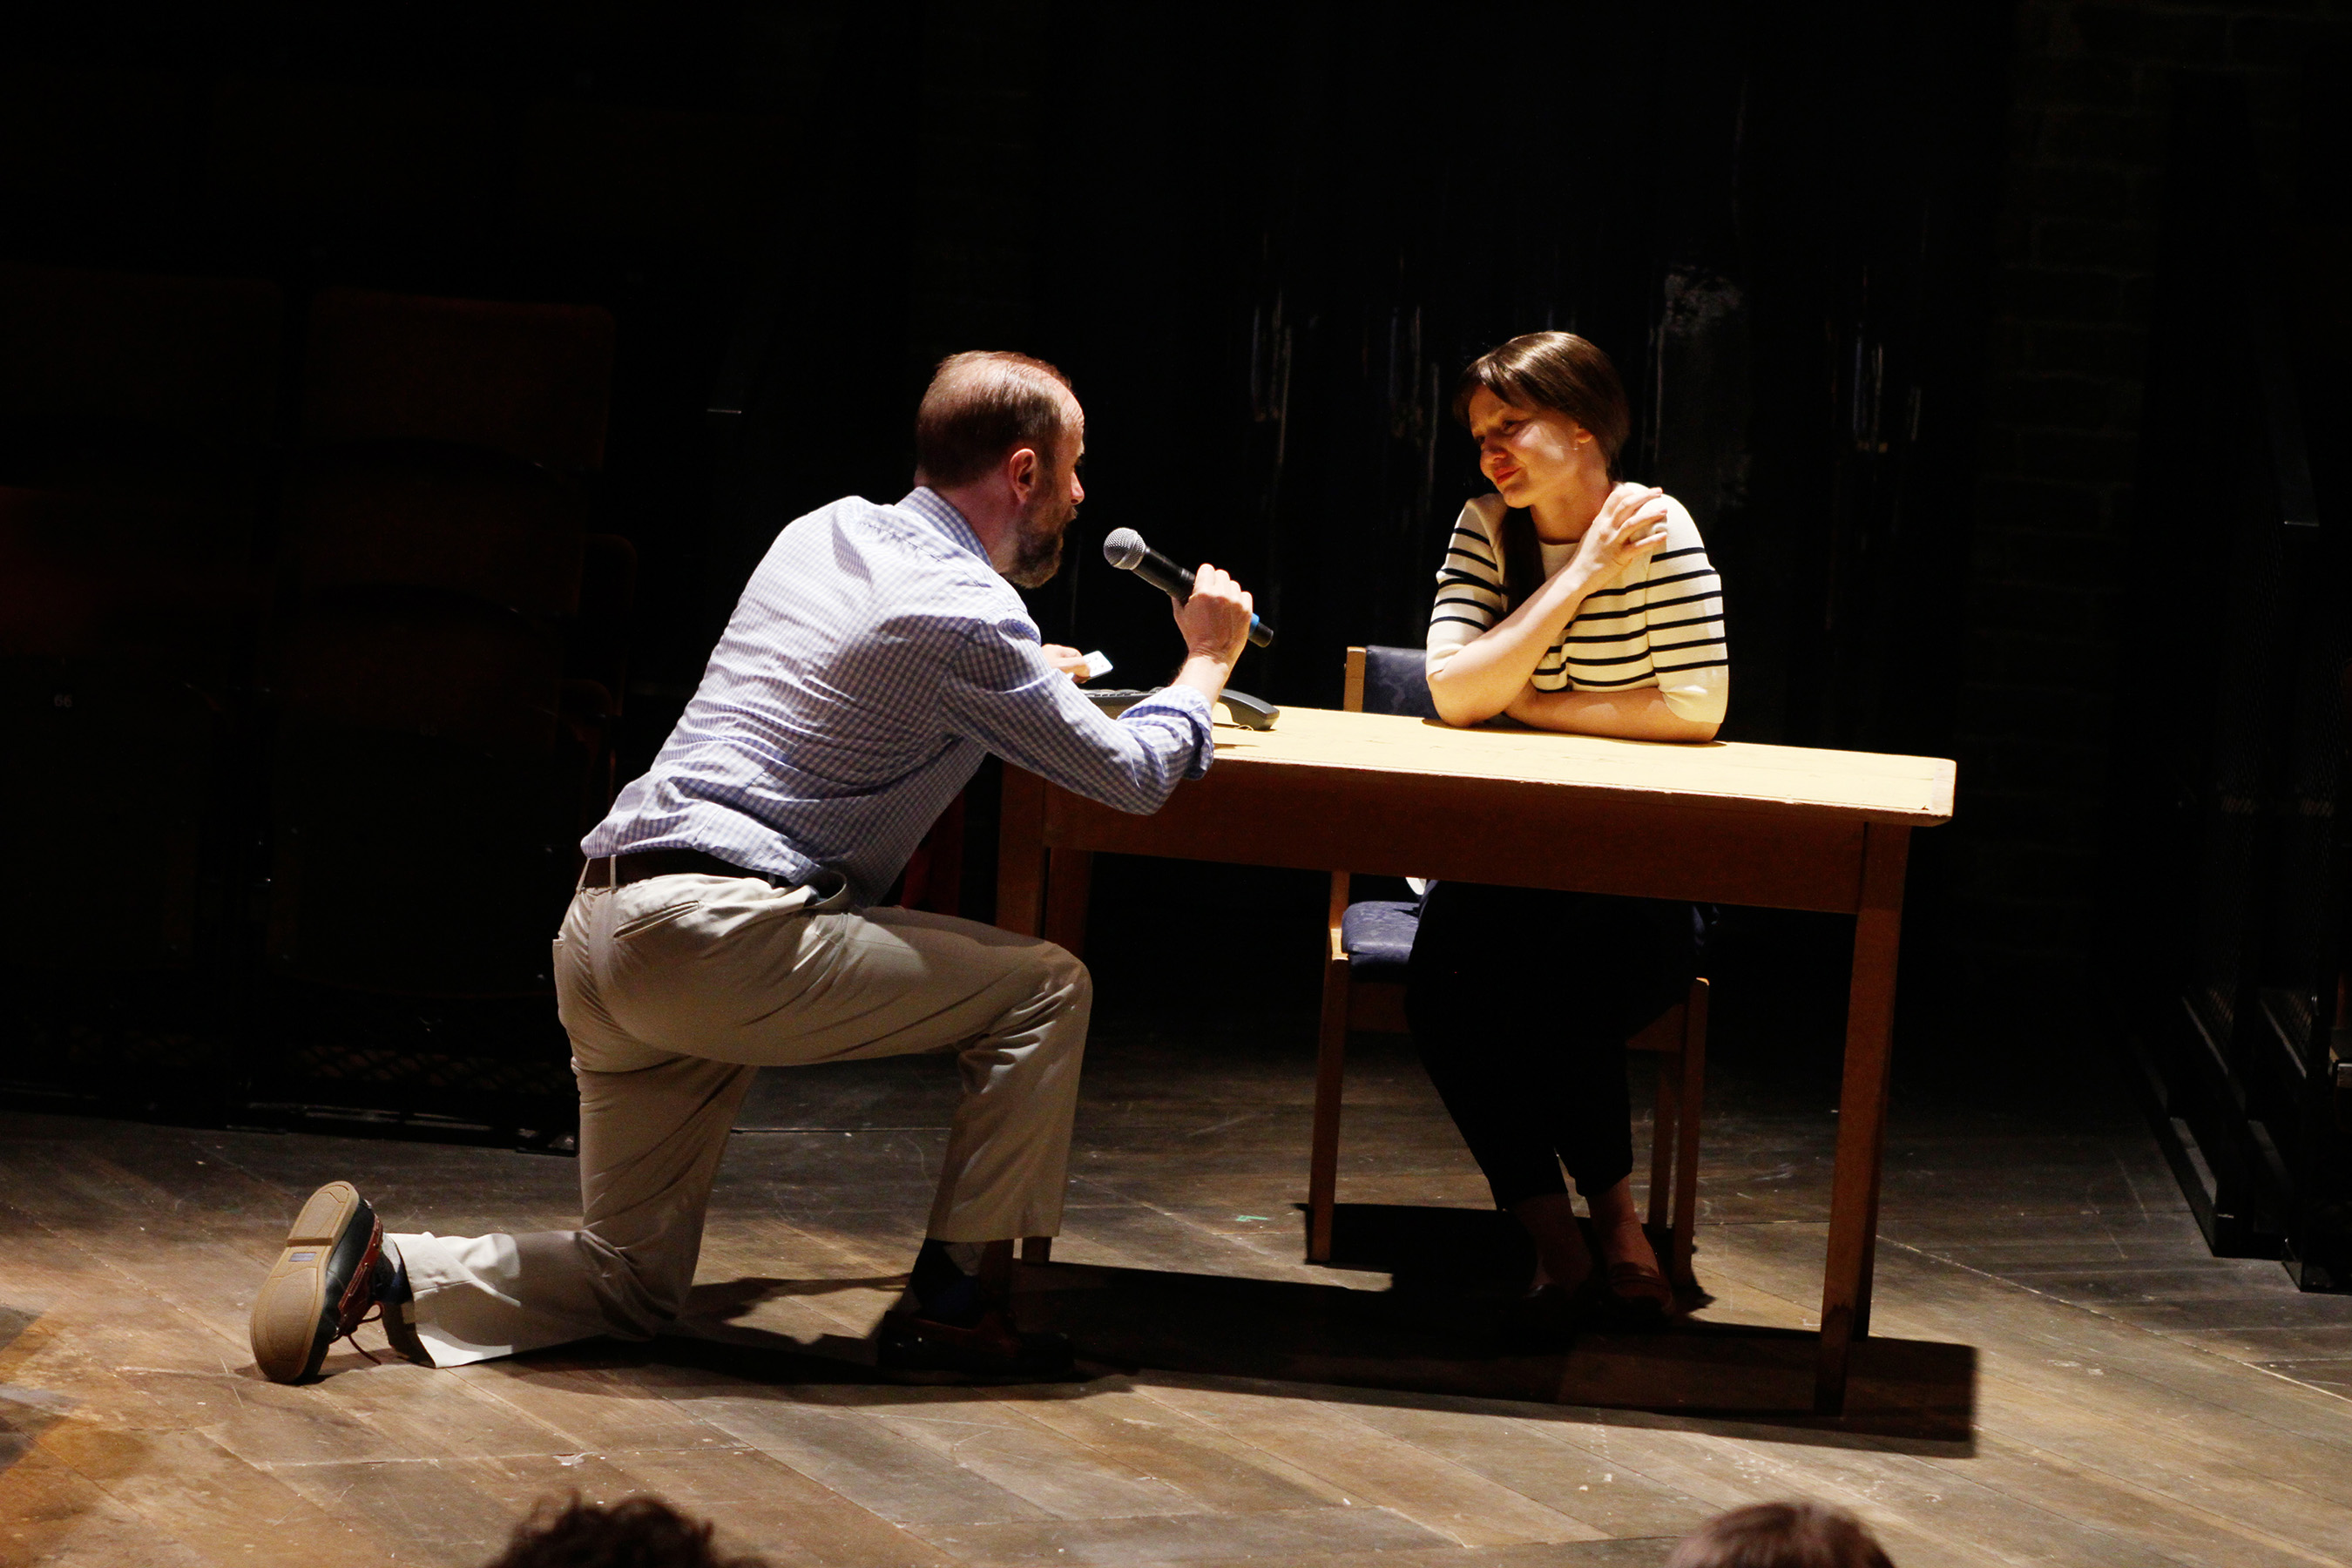 Patrick Brennan & Laura Dos Santos in The Sum, photograph by Stephen Vaughan IMG_2554